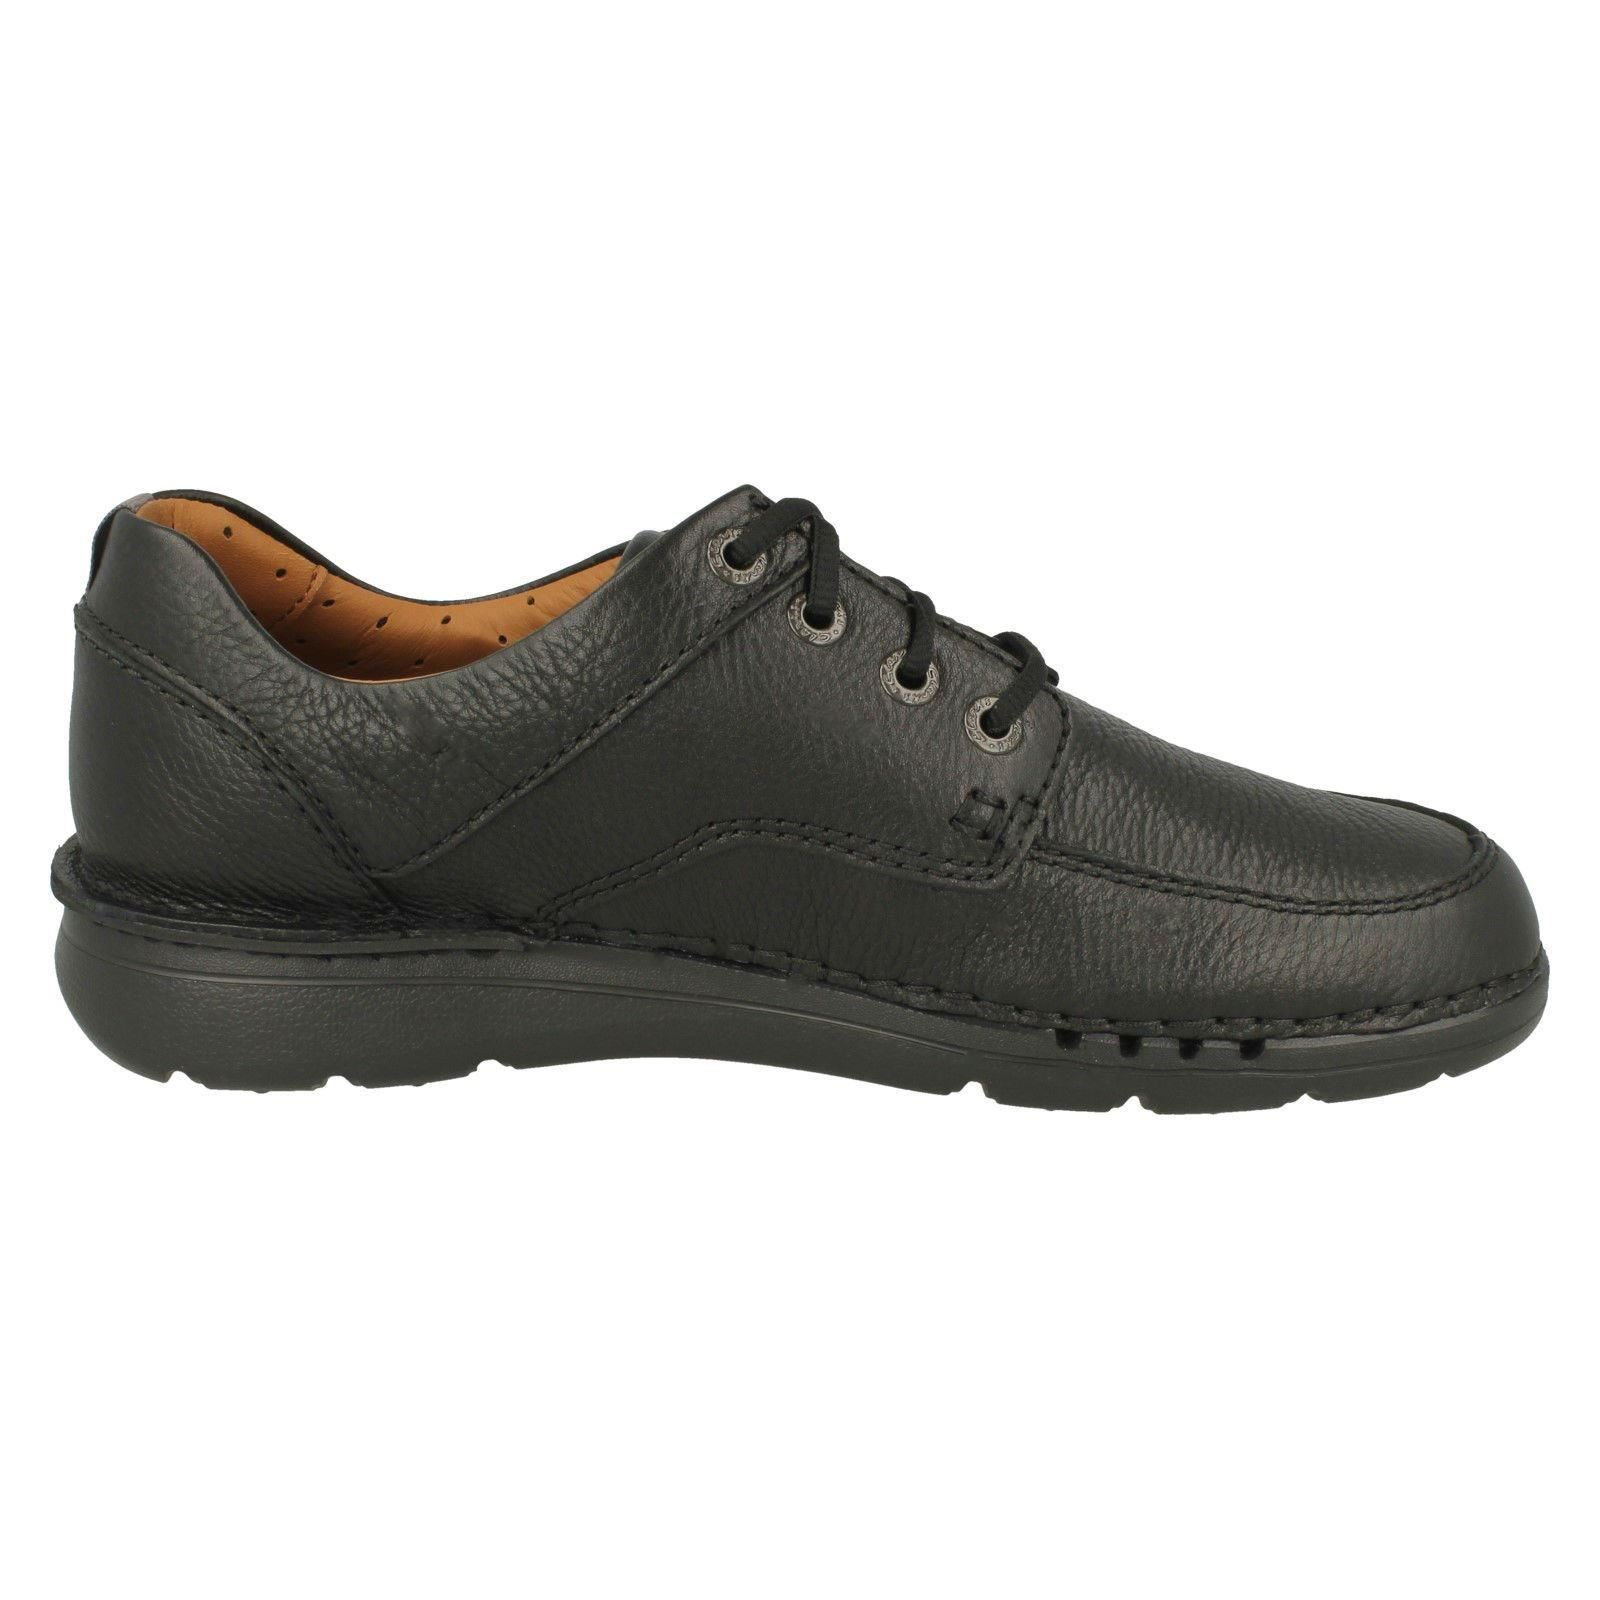 Da Uomo Clarks Casual Con Lacci Scarpe Sportive-tempo unnature unnature unnature 856559